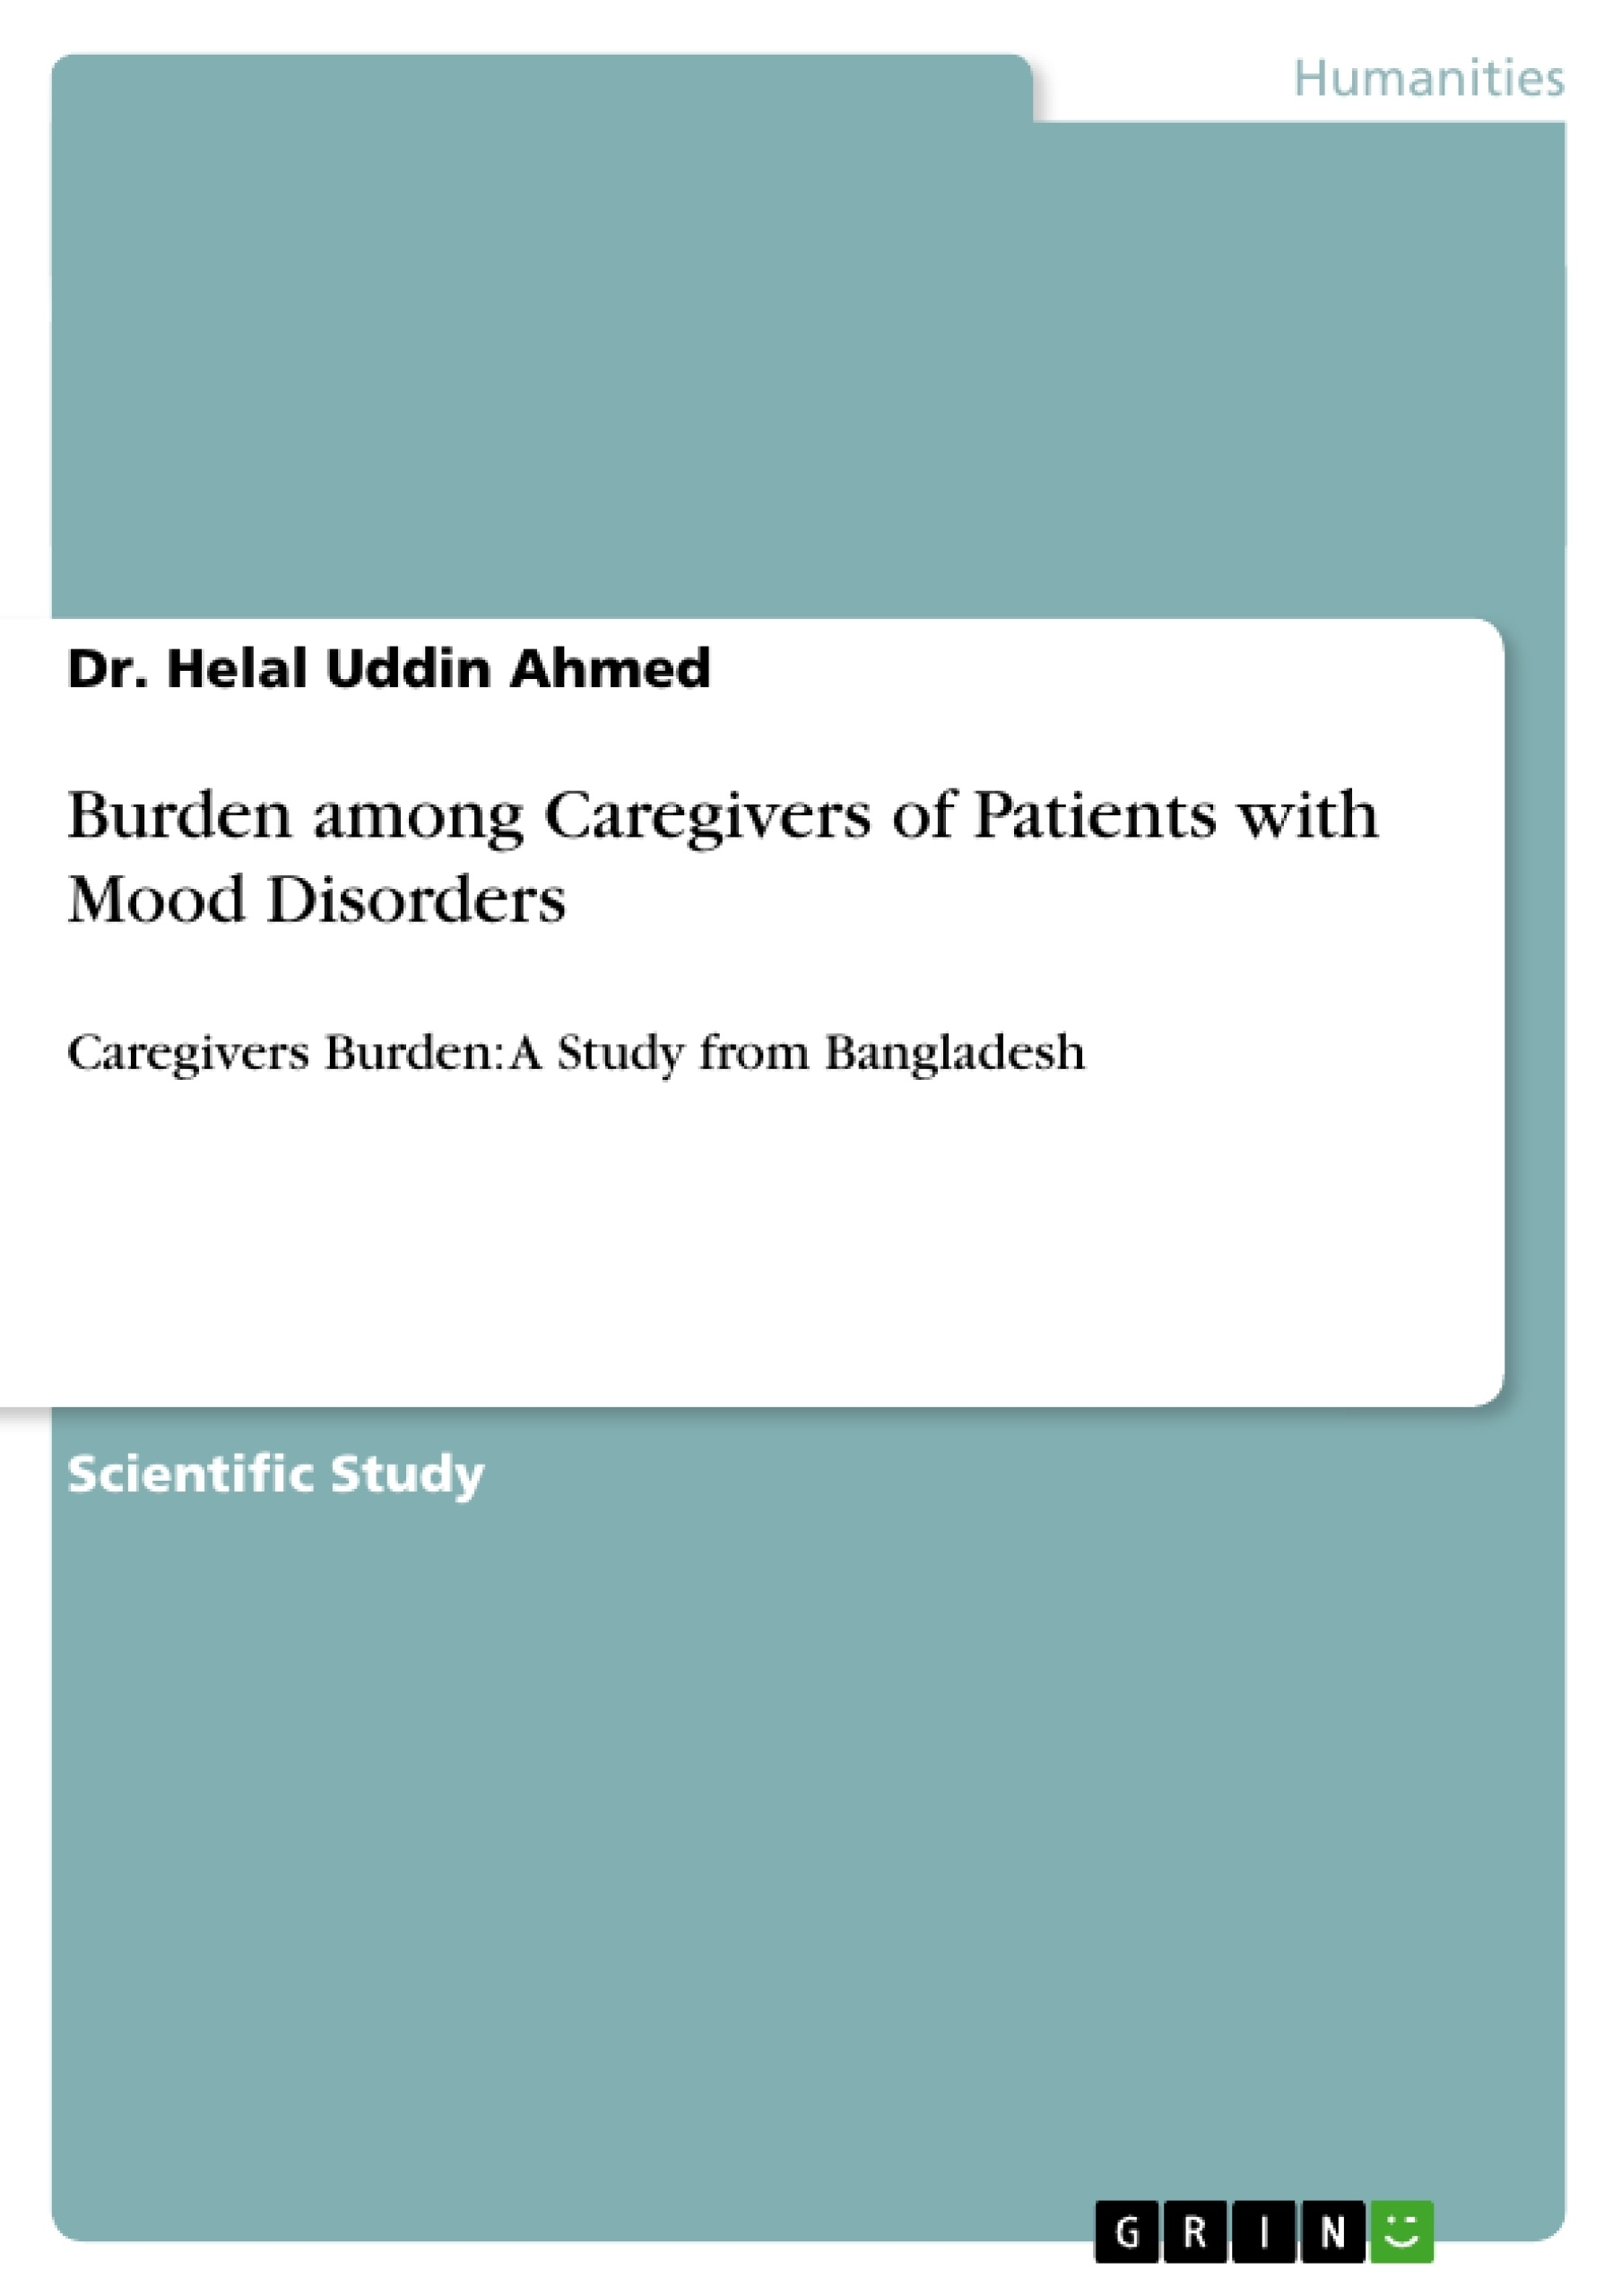 Title: Burden among Caregivers of Patients with Mood Disorders